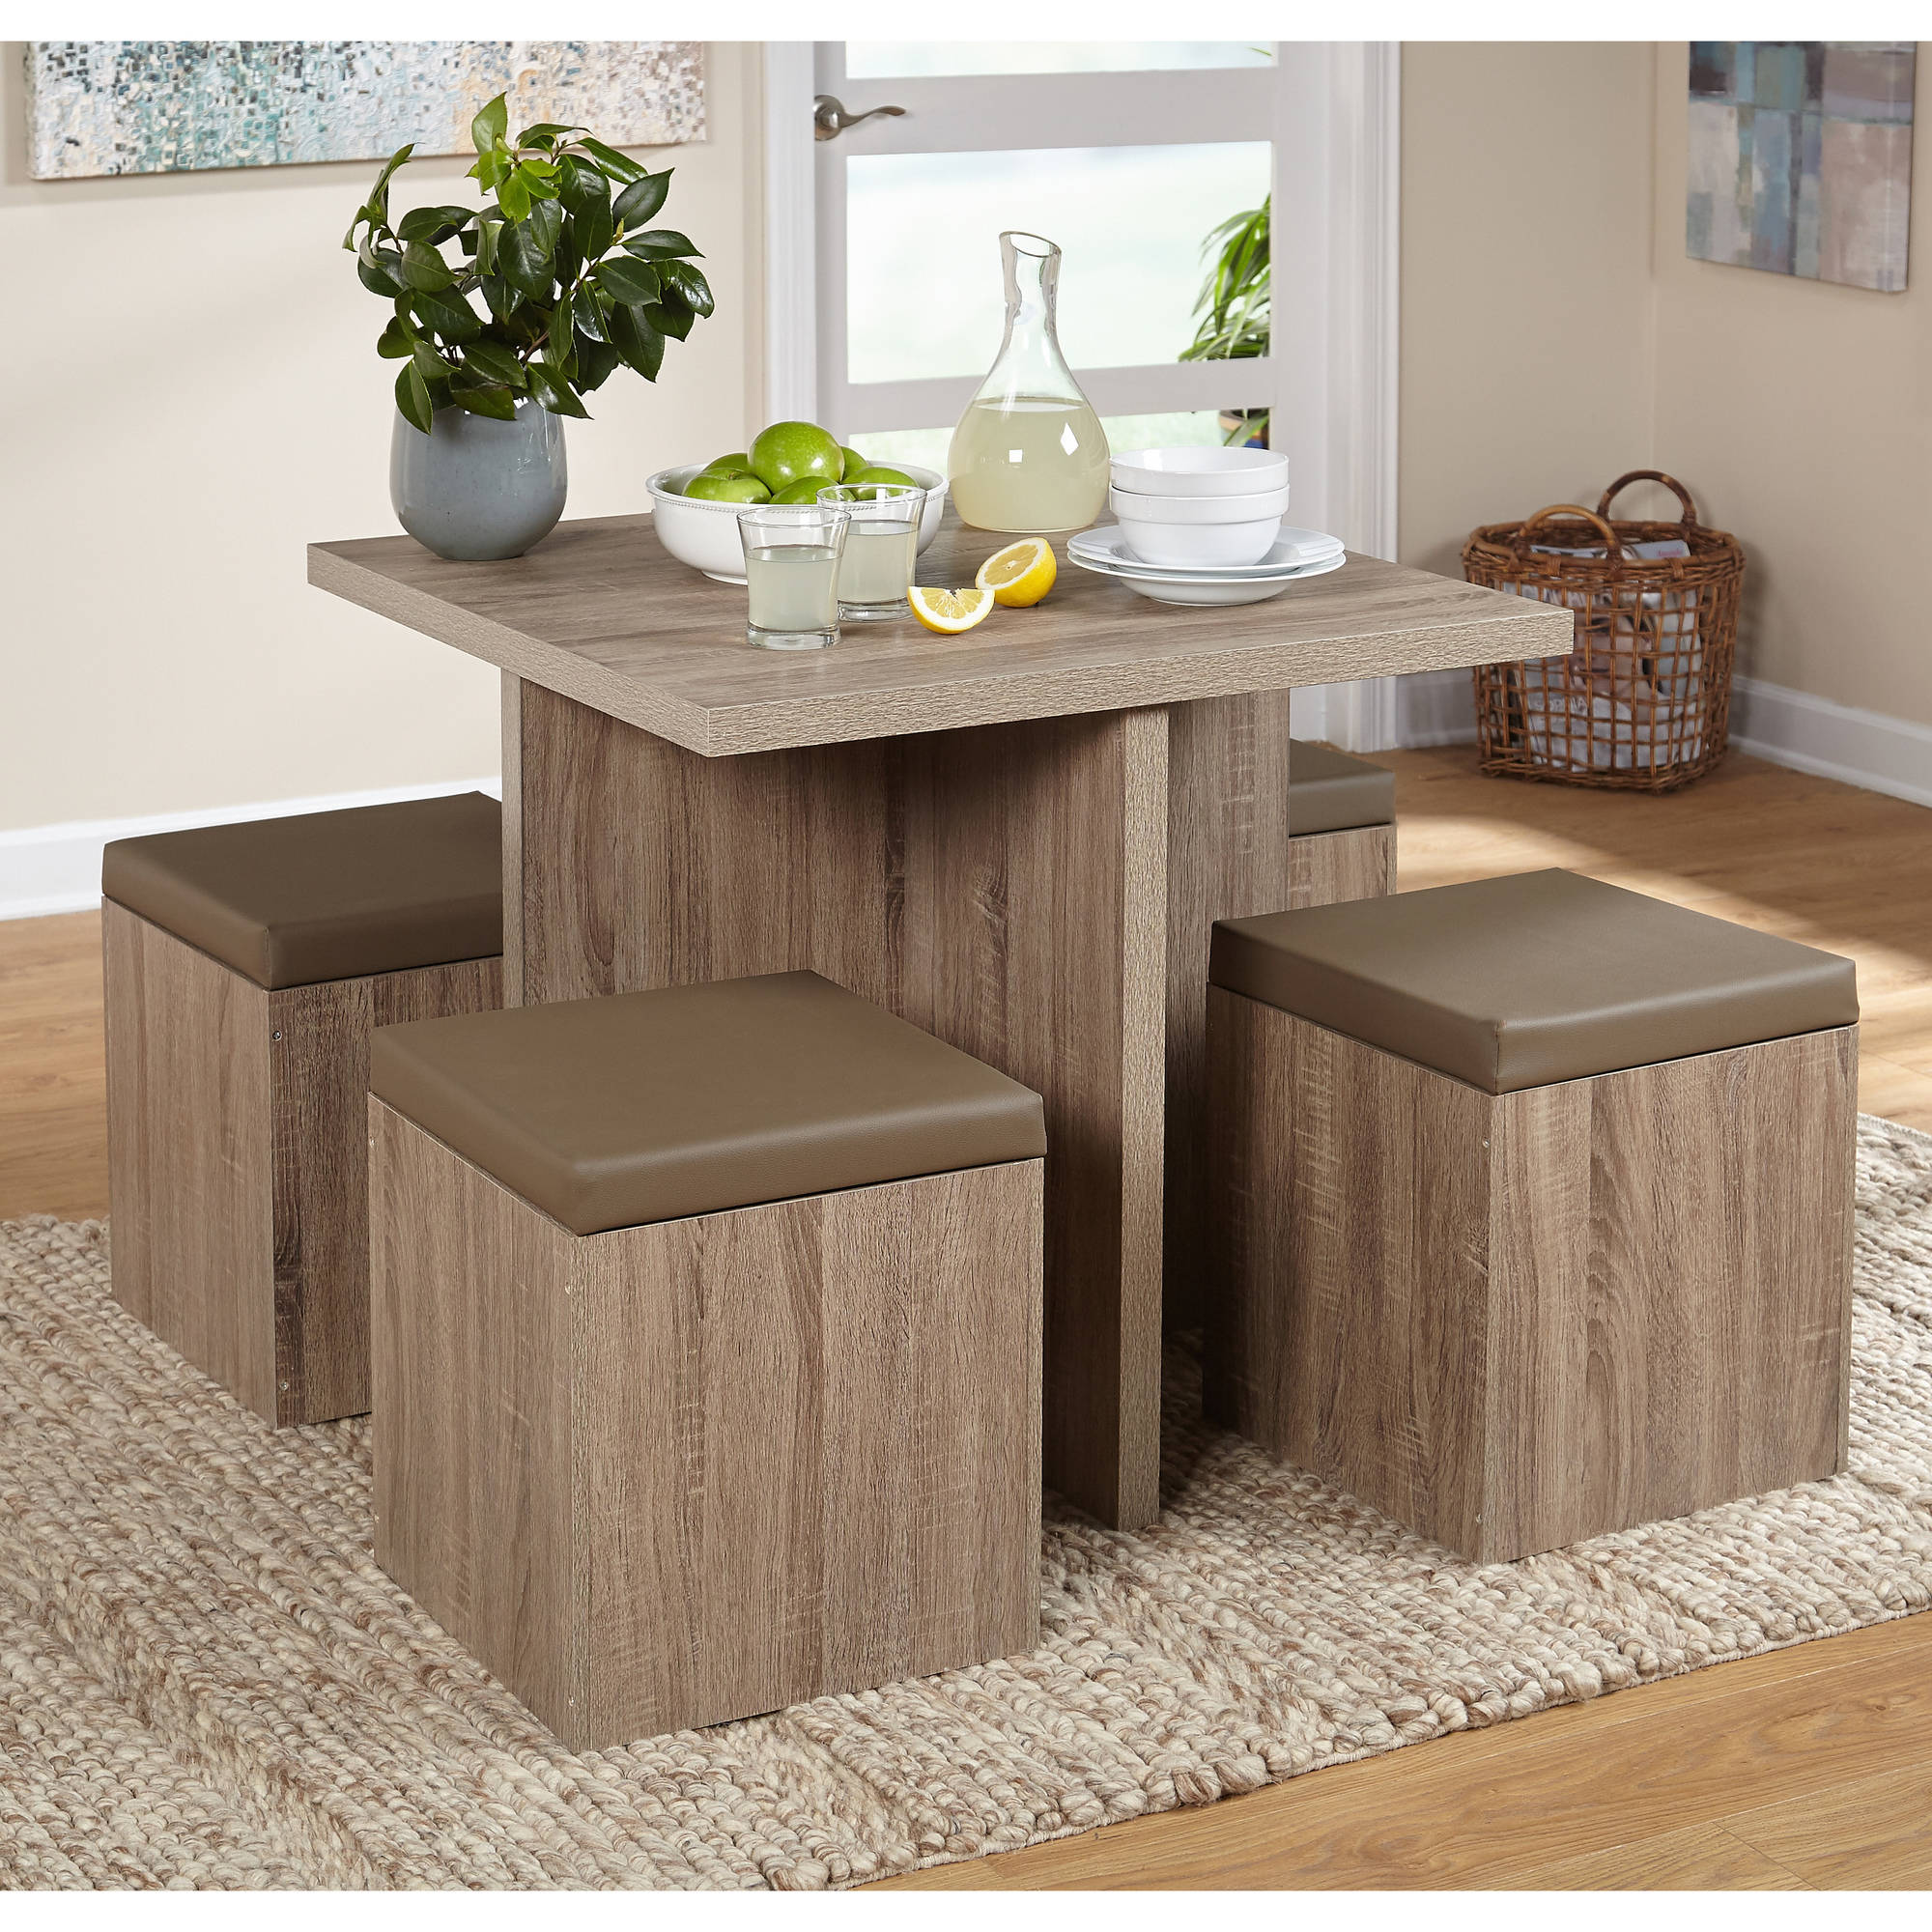 5 Piece Baxter Dining Set With Storage Ottoman Onsales11 Com